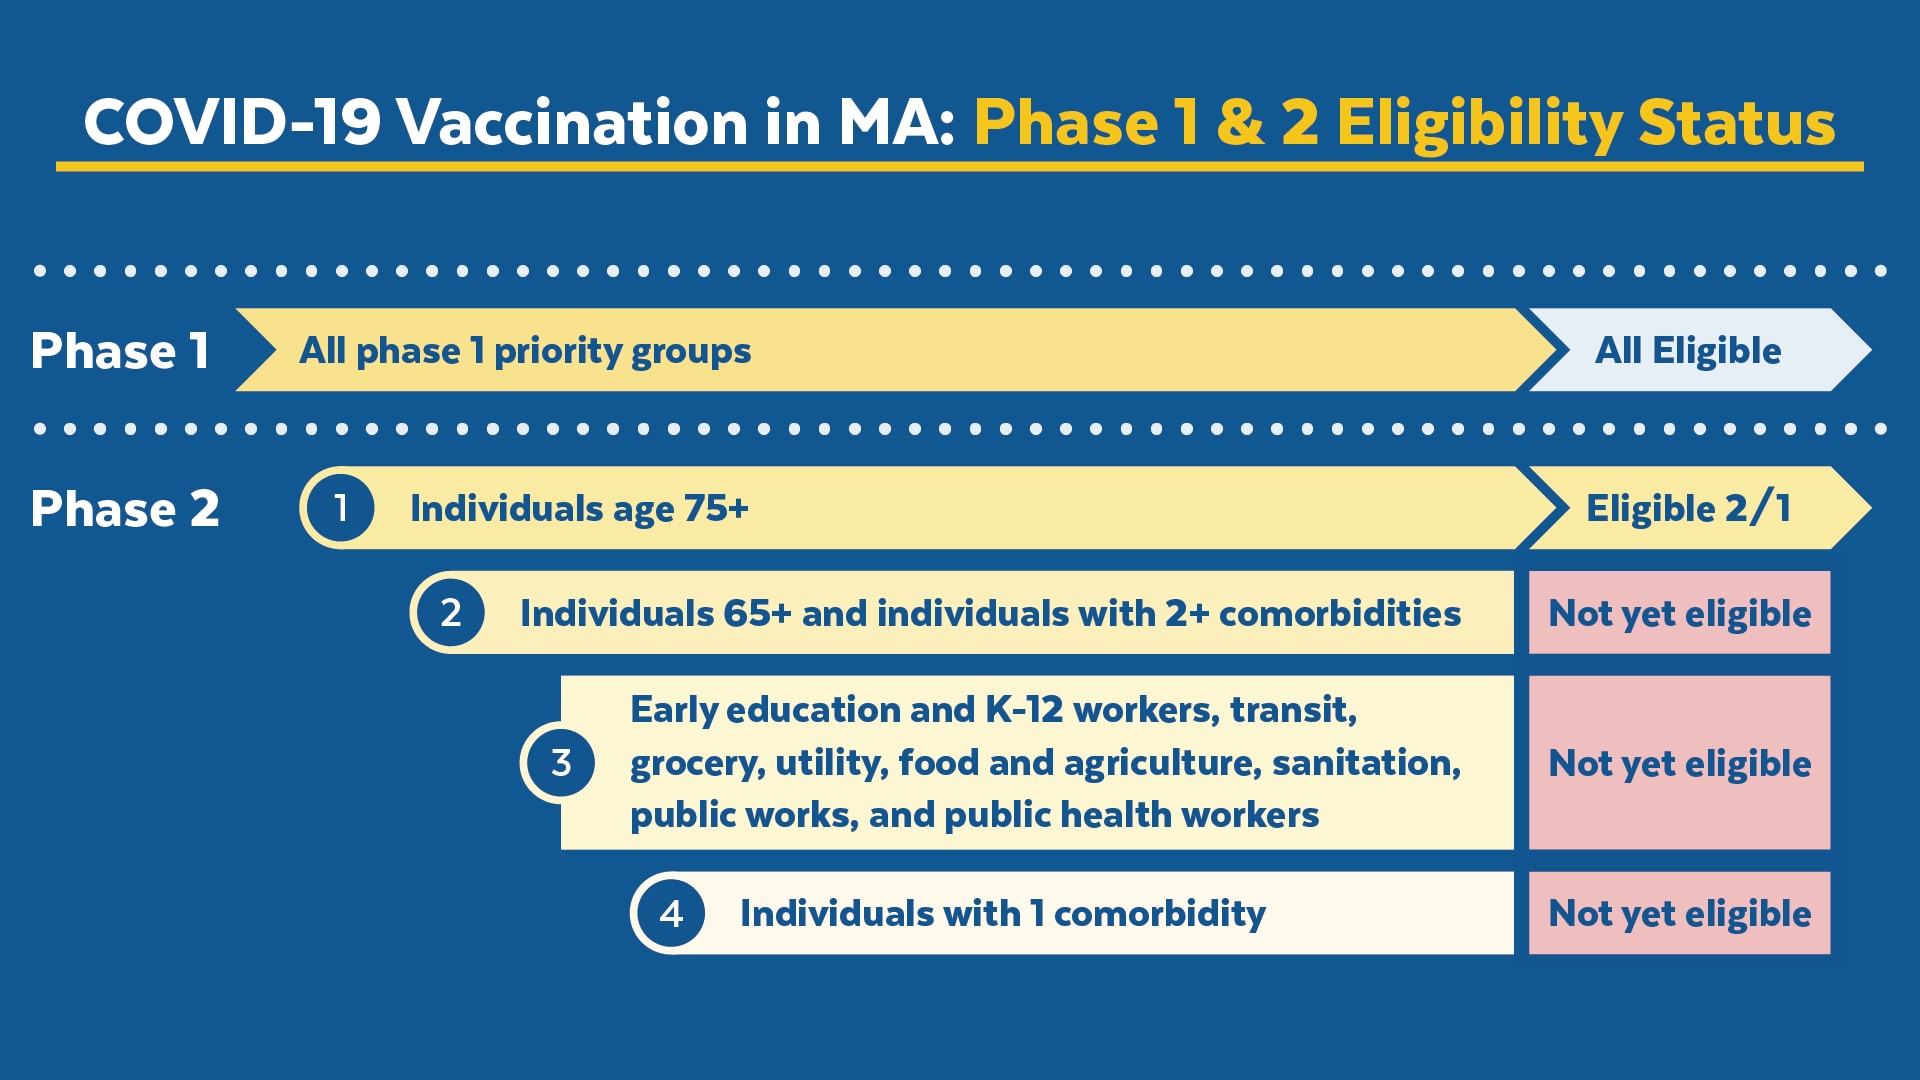 COVID-19 Vaccination in MA: Phase 1 & 2 Eligibility. All phase 1 priority groups are currently eligible for vaccination. Phase 2, group one: Individuals age 75+ will be eligible on February 2. The rest of Phase 2 groups are not yet eligible.